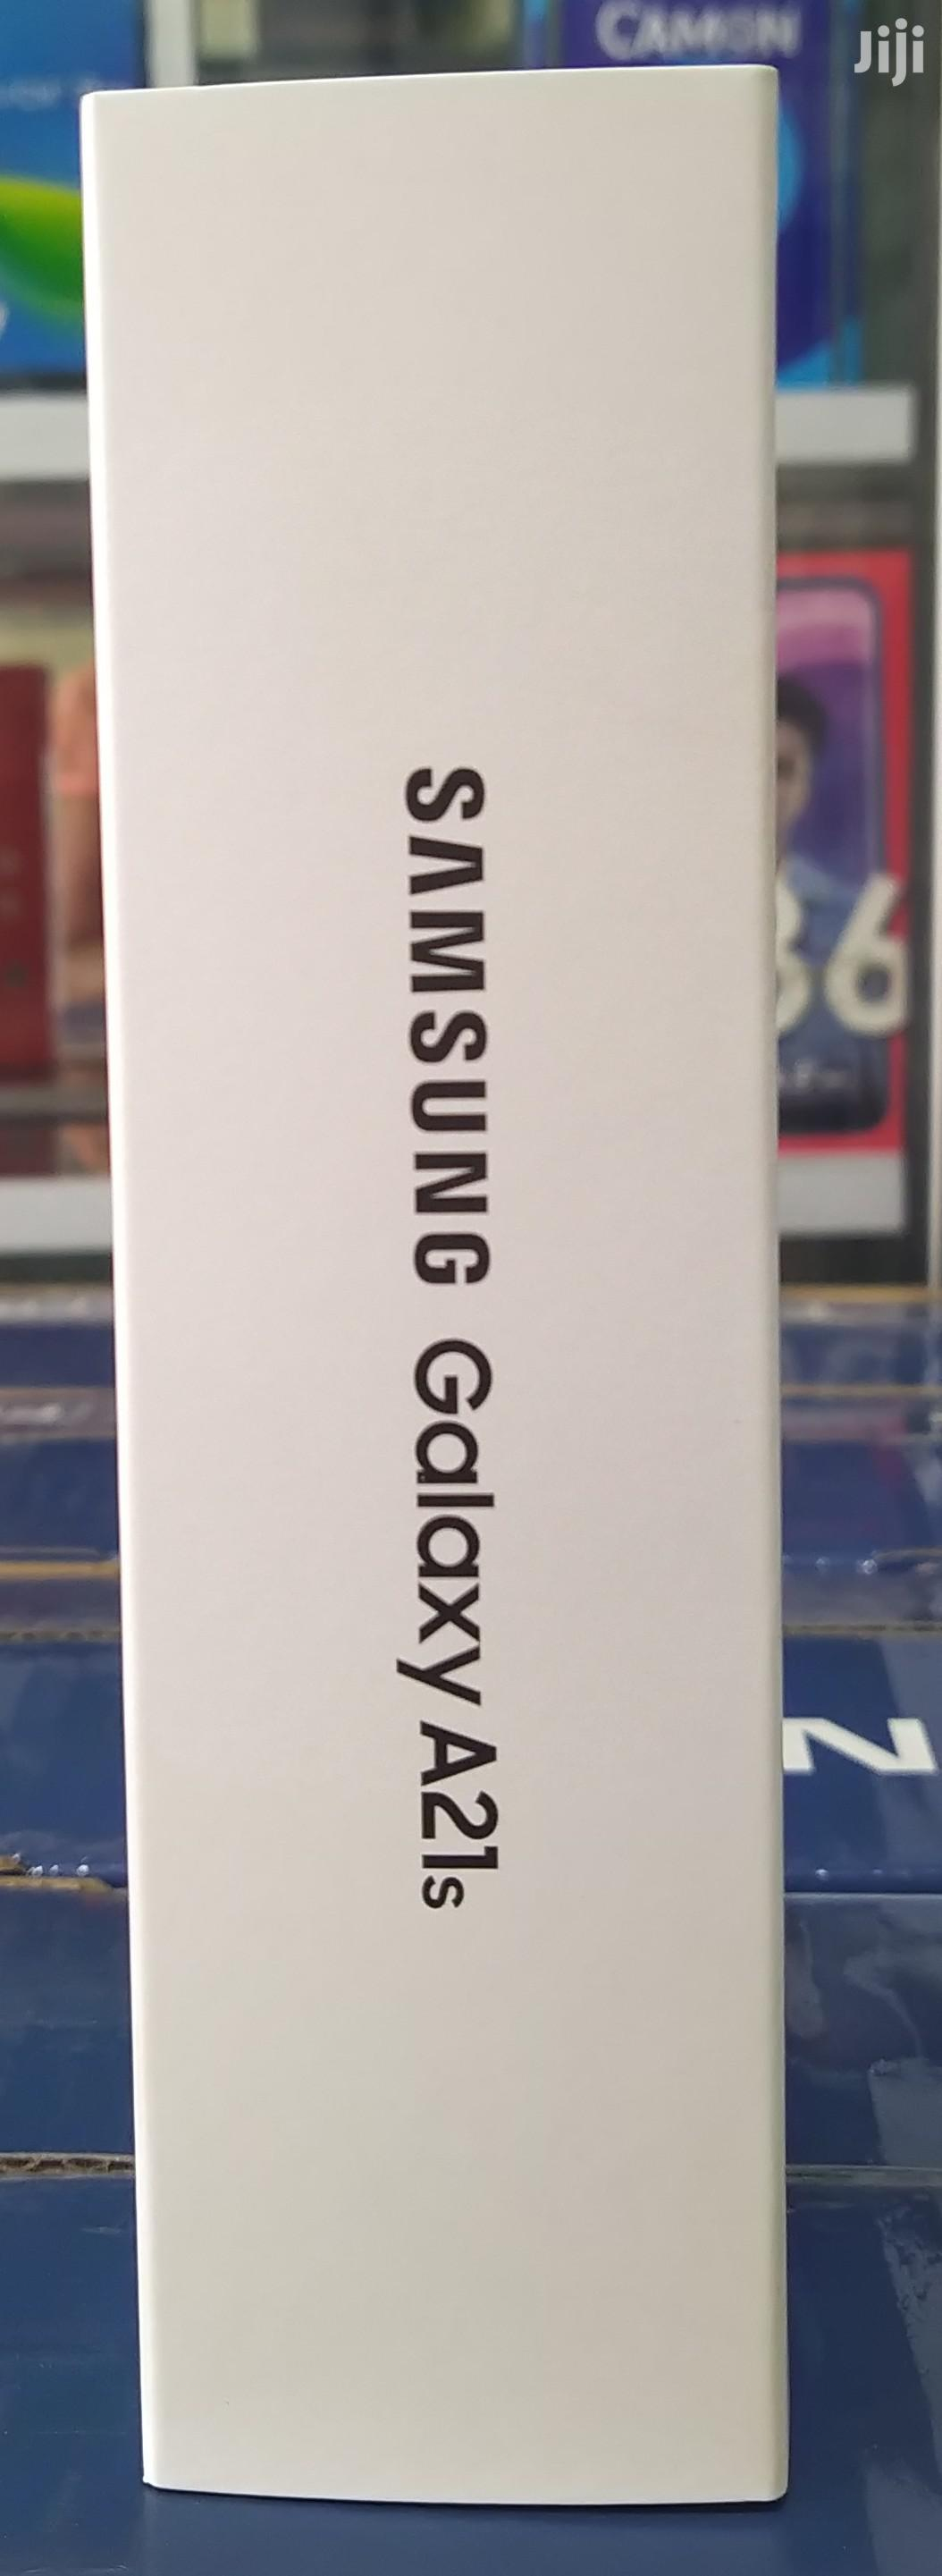 New Samsung Galaxy A21s 64 GB Black | Mobile Phones for sale in Avenor Area, Greater Accra, Ghana